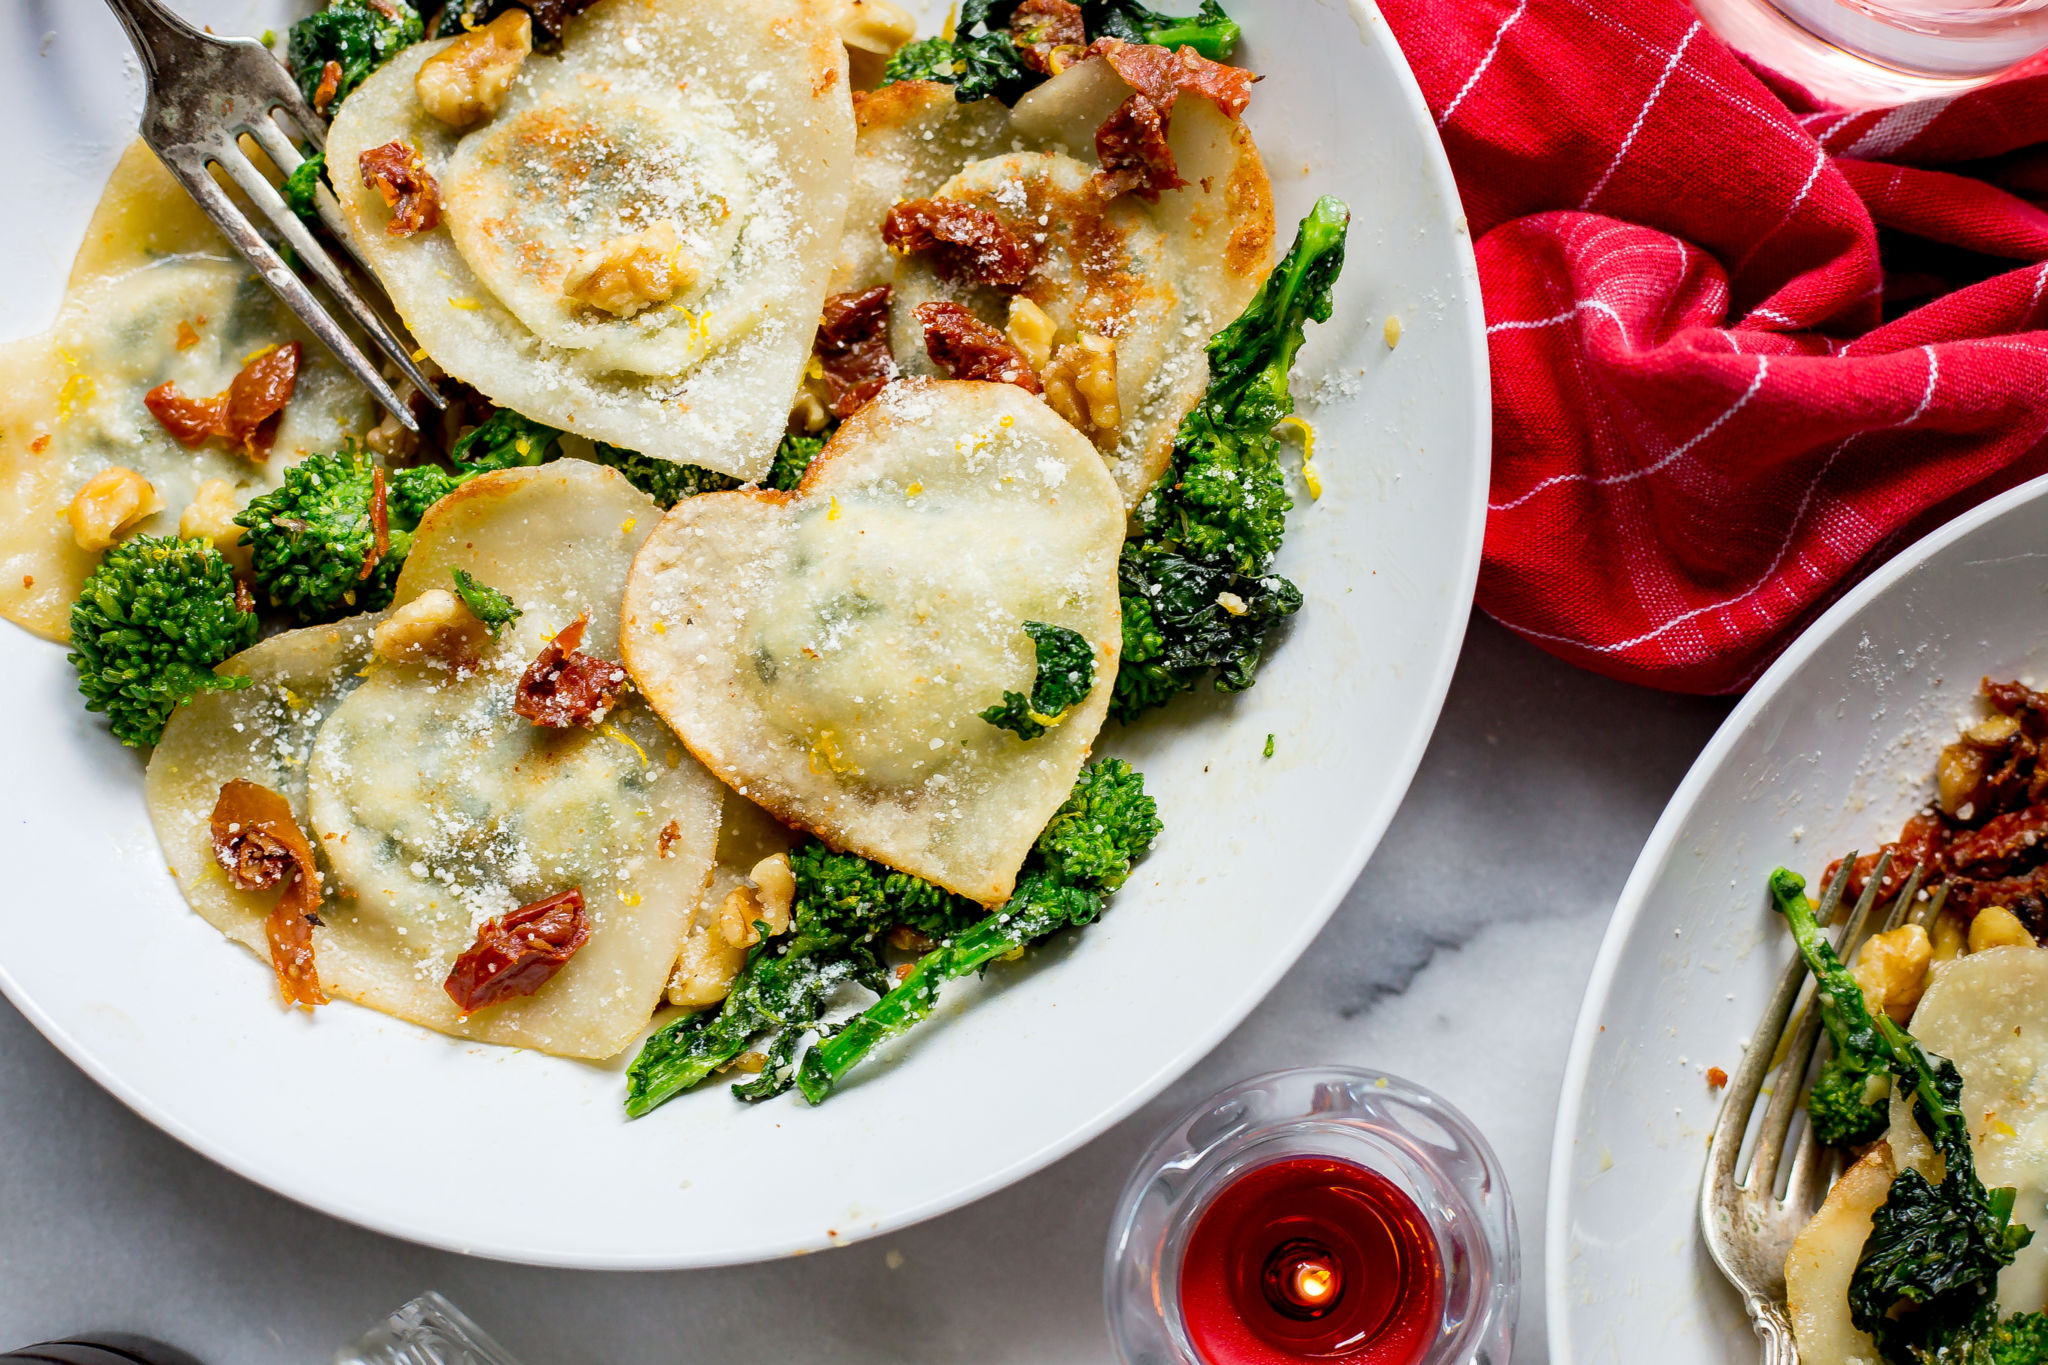 Quick and Easy Wonton Wrapper Broccoli Rabe Ravioli